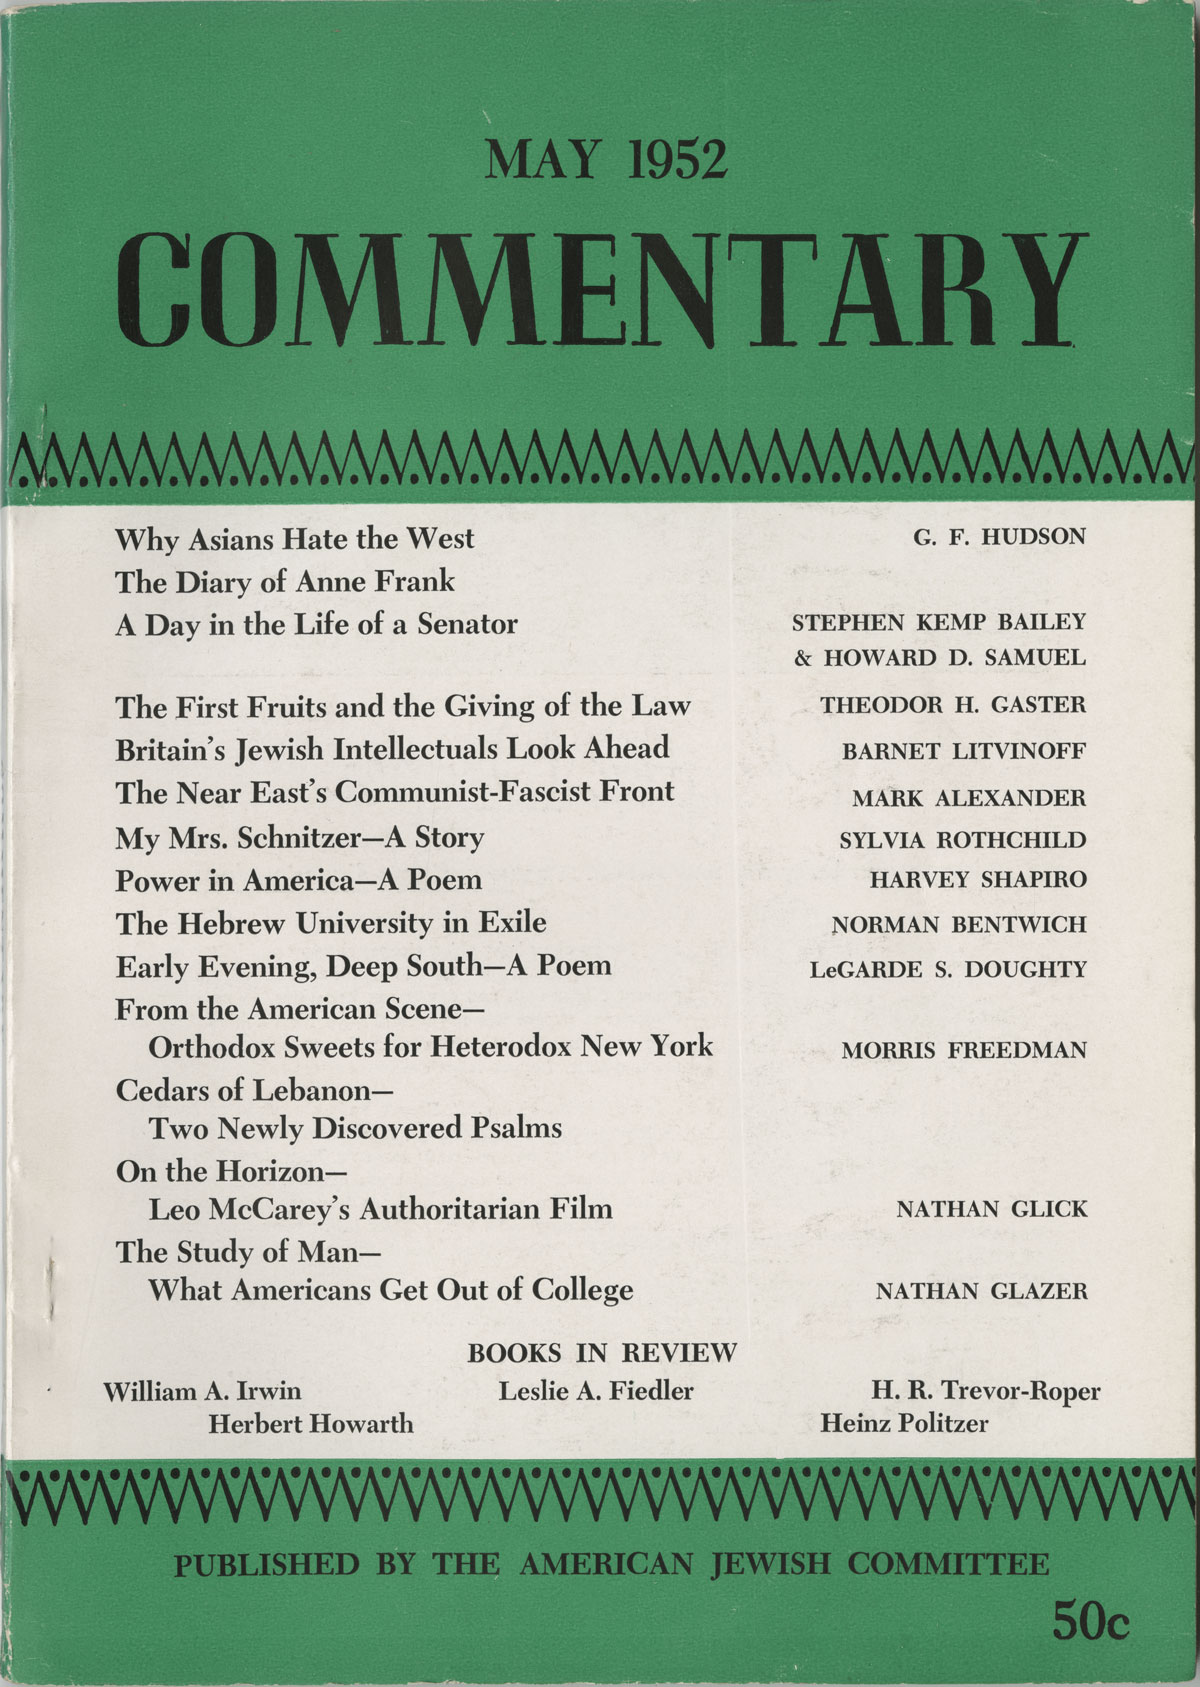 Cover of Commentary (May 1952) First U.S. Publication of The Diary of Anne Frank, Periodicals Collection.